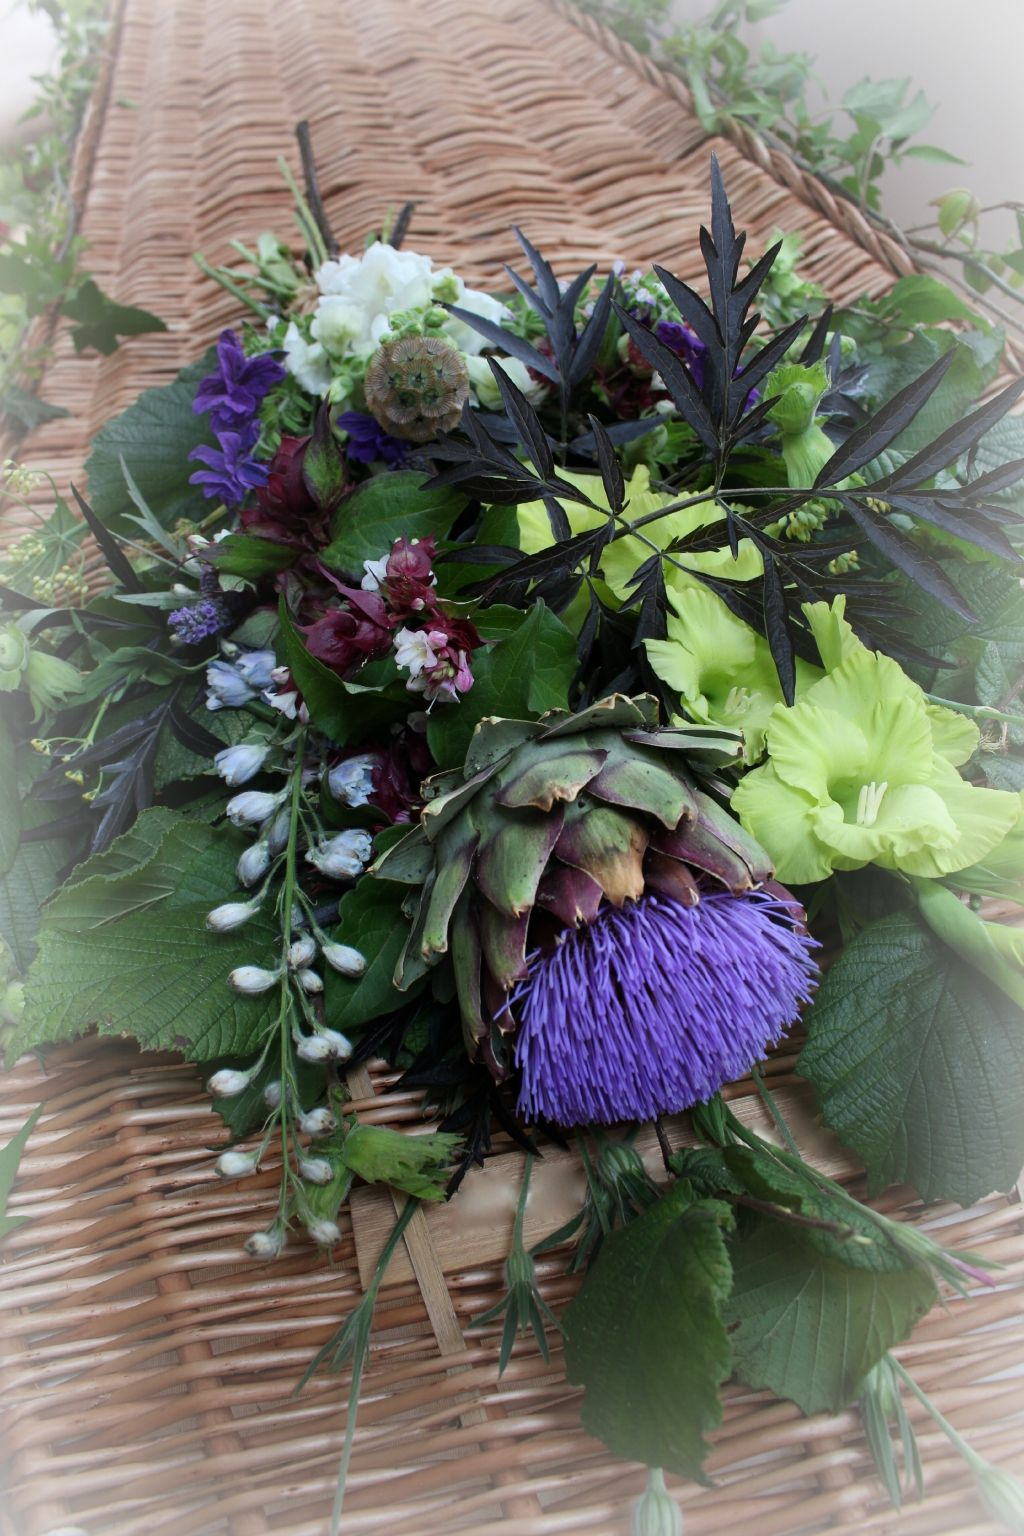 August sheaf by tuckshop flowers locally lovely and 100 august sheaf by tuckshop flowers locally lovely and 100 biodegradable izmirmasajfo